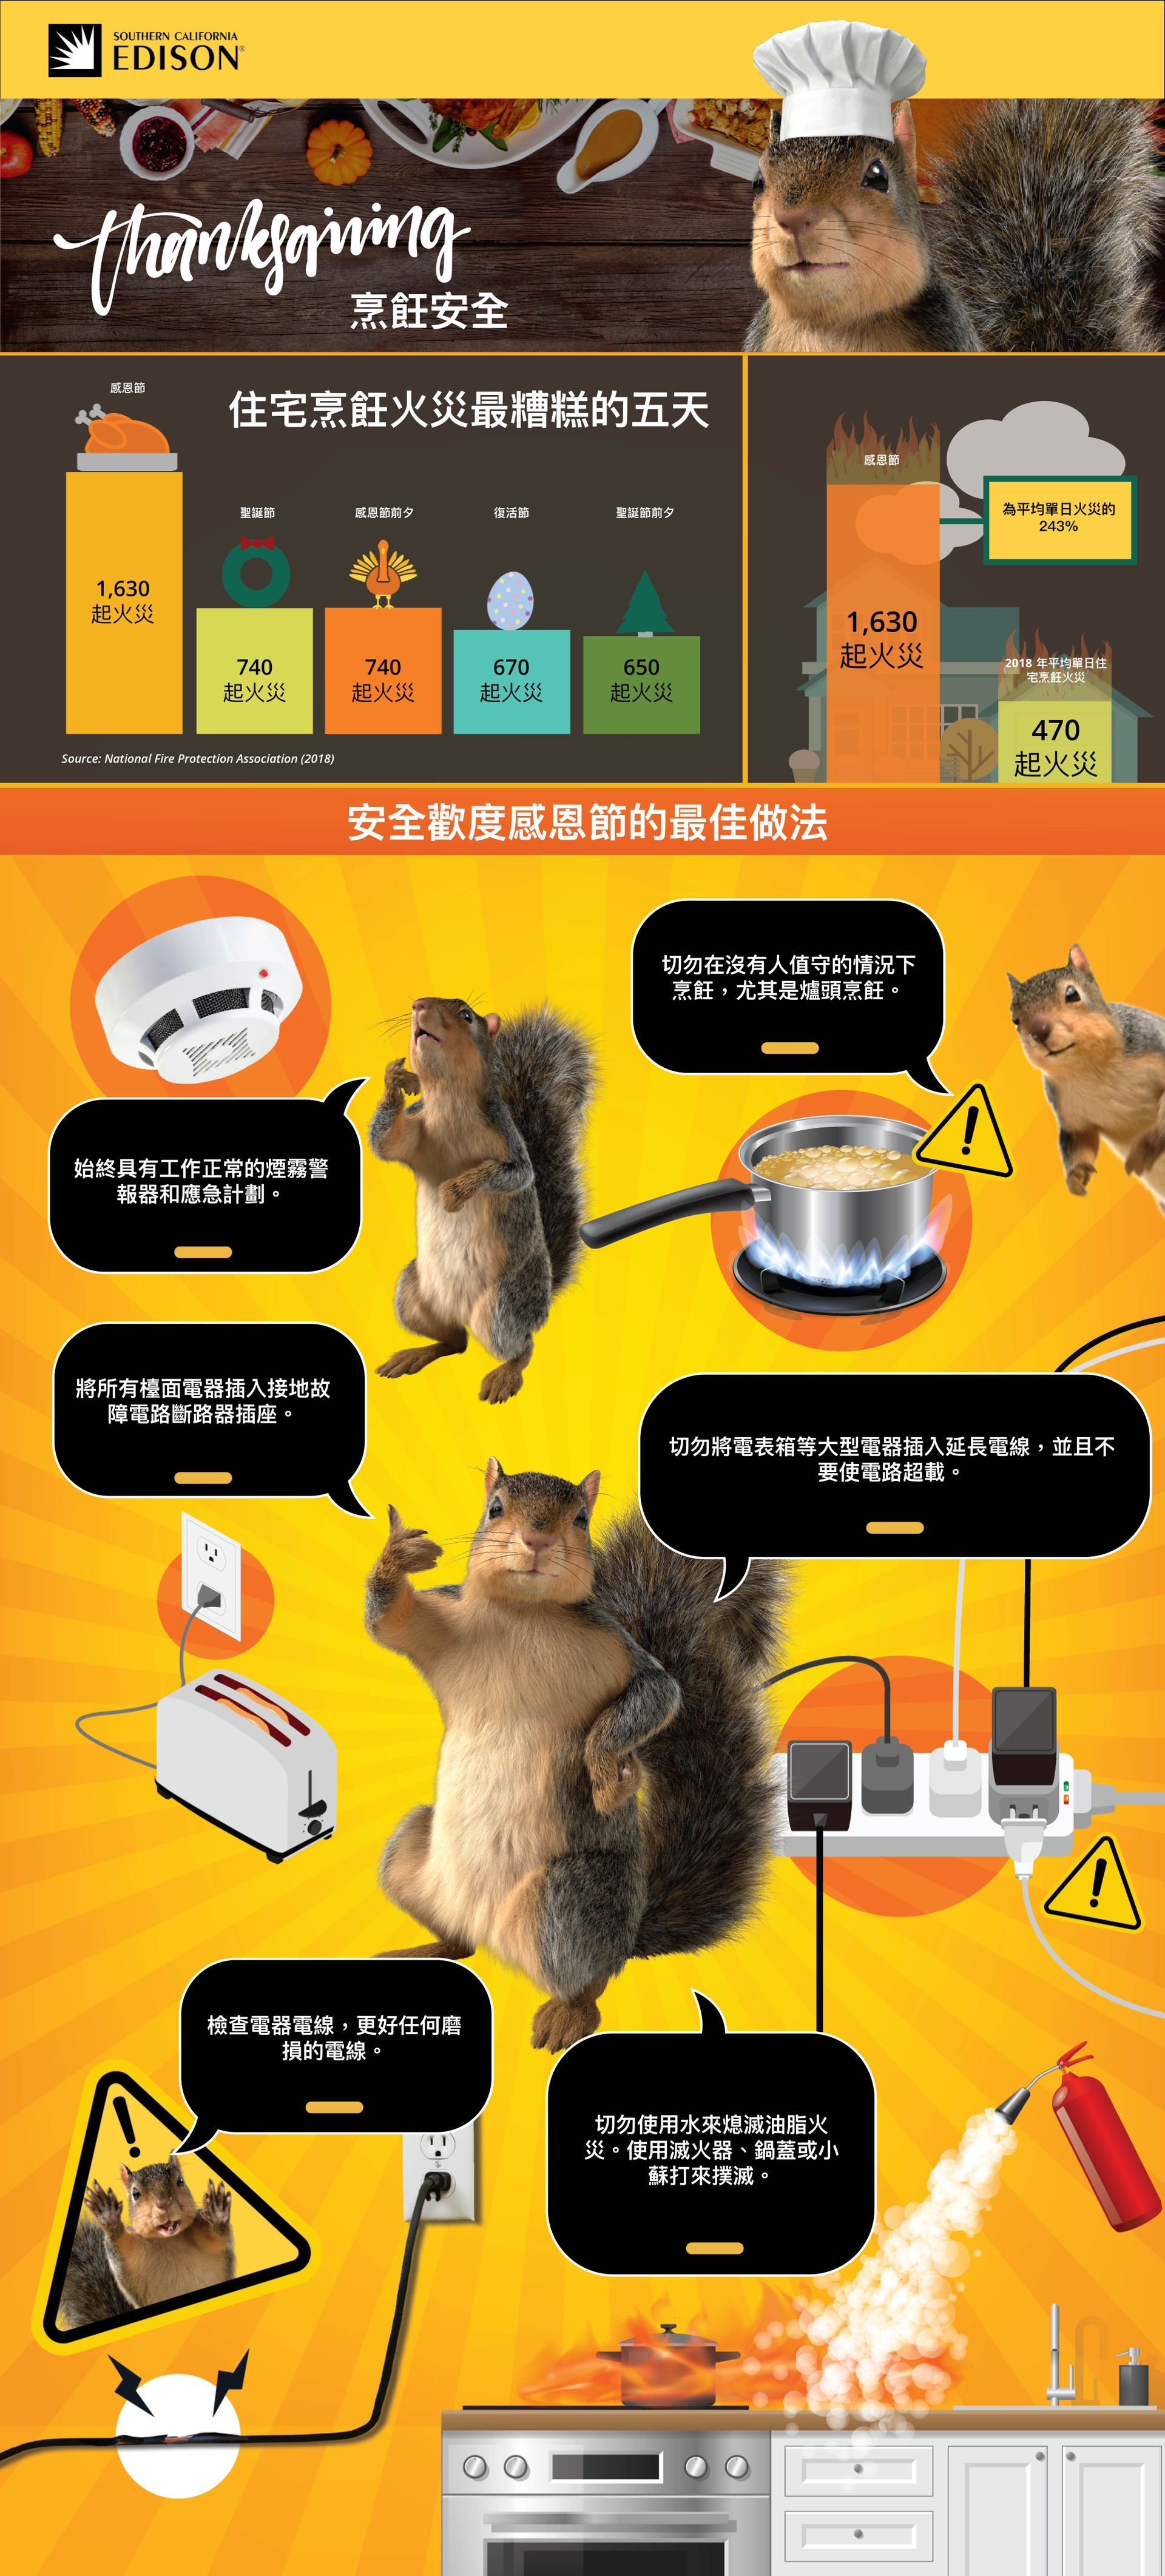 Thanksgiving_Cooking_Safety_CH